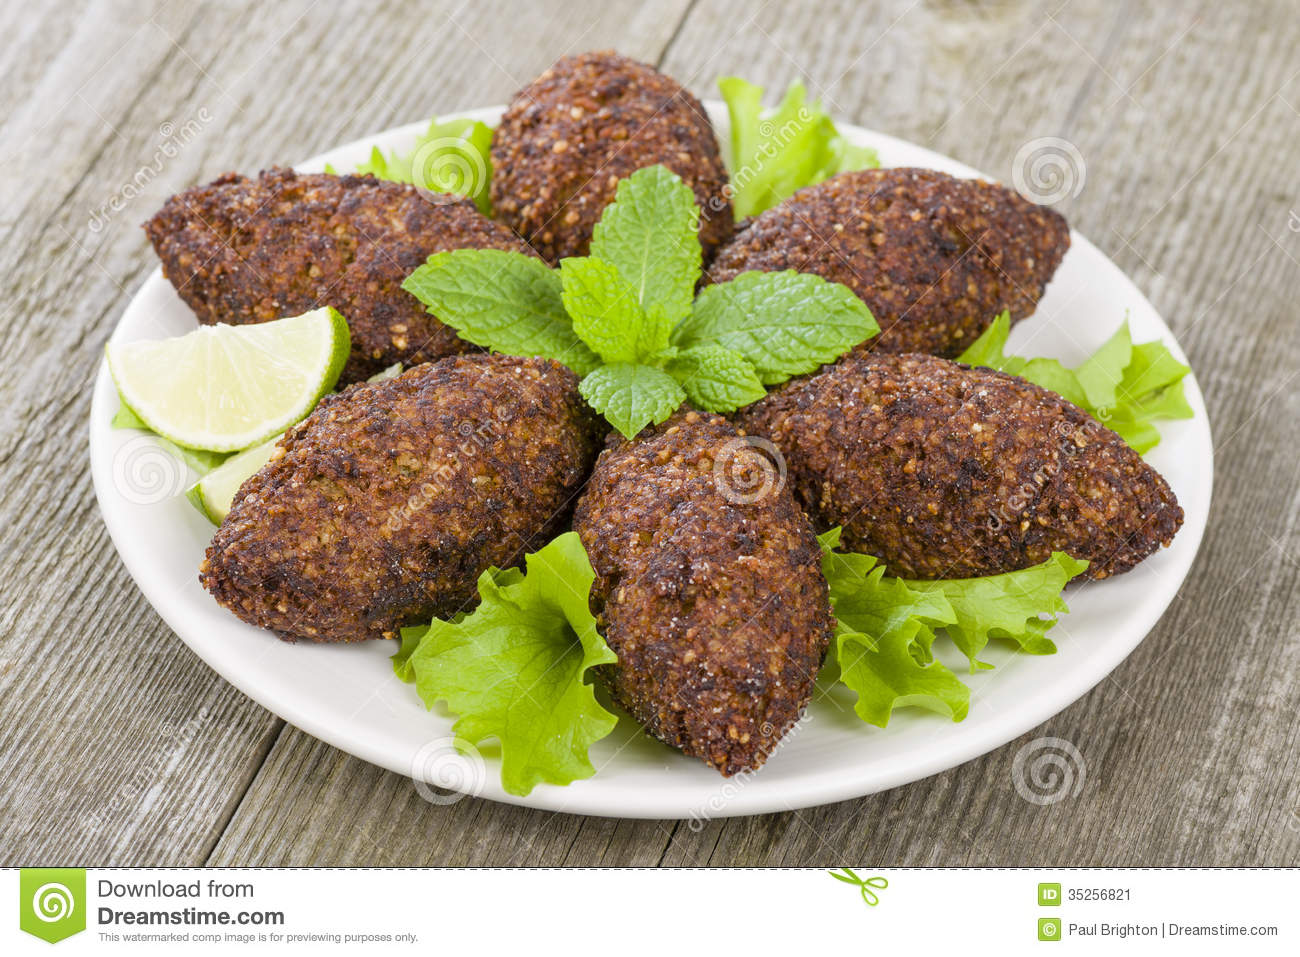 Recipe for Kibbeh - Indiamarks